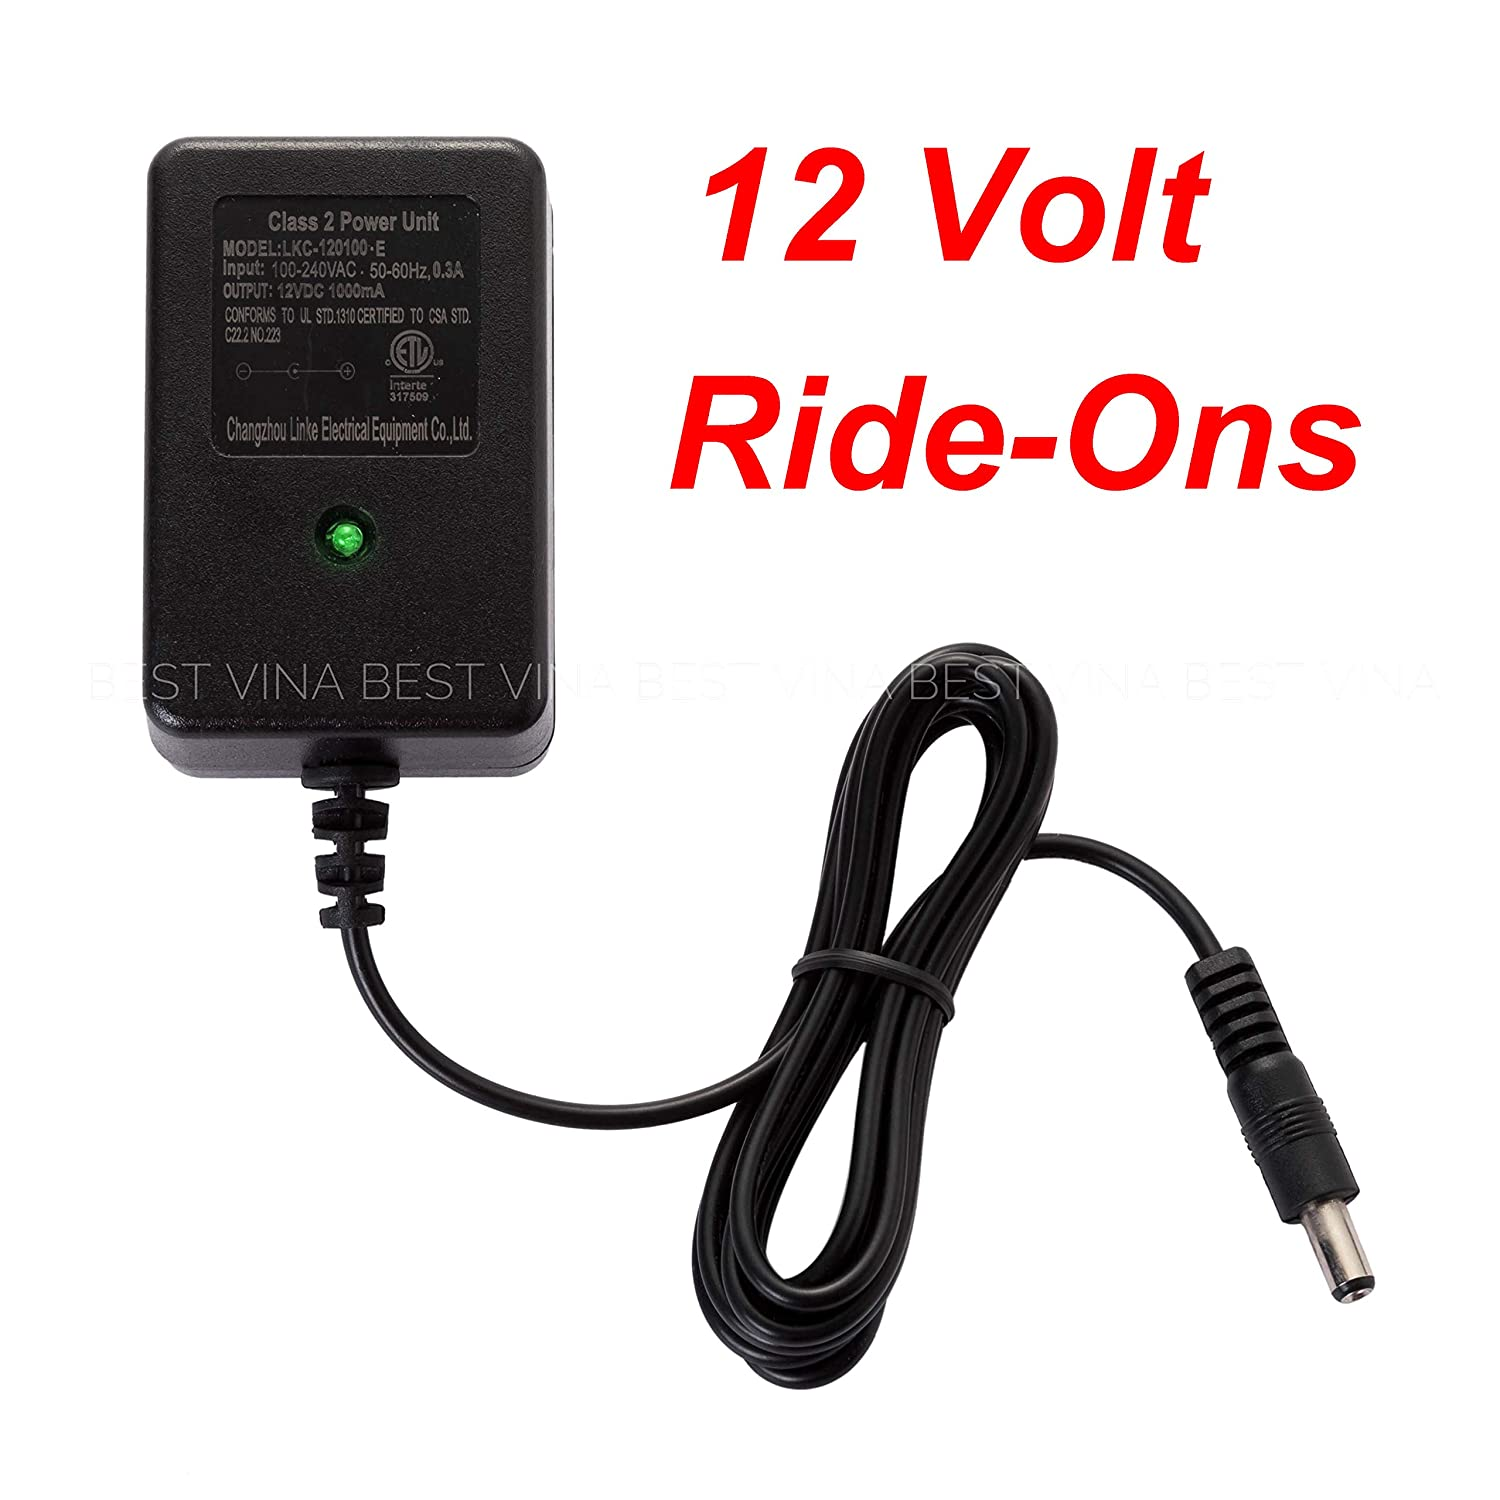 81fHFRaYpGL._SL1500_ amazon com 12v charger for kids ride on car, 12 volt battery